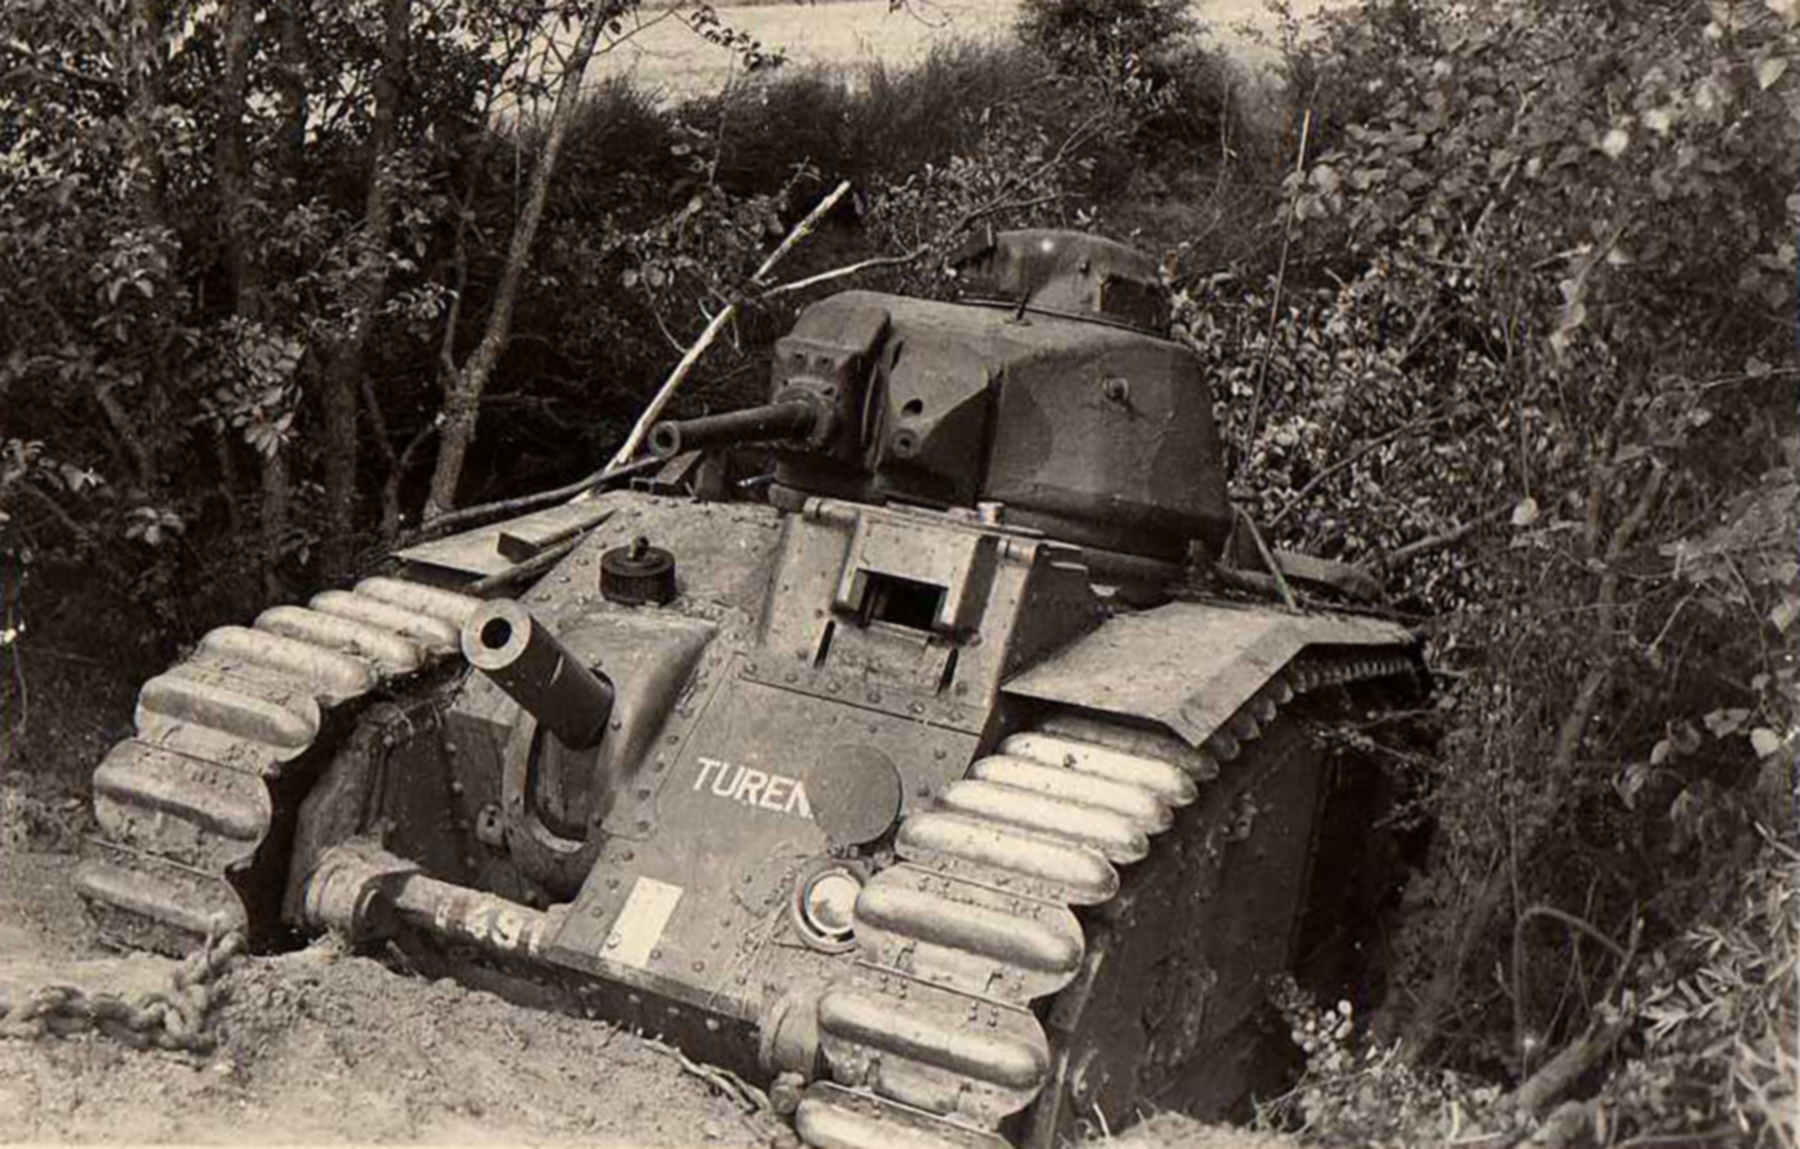 French Army Renault Char B1bis named Turen 491 abandoned battle of France ebay 01